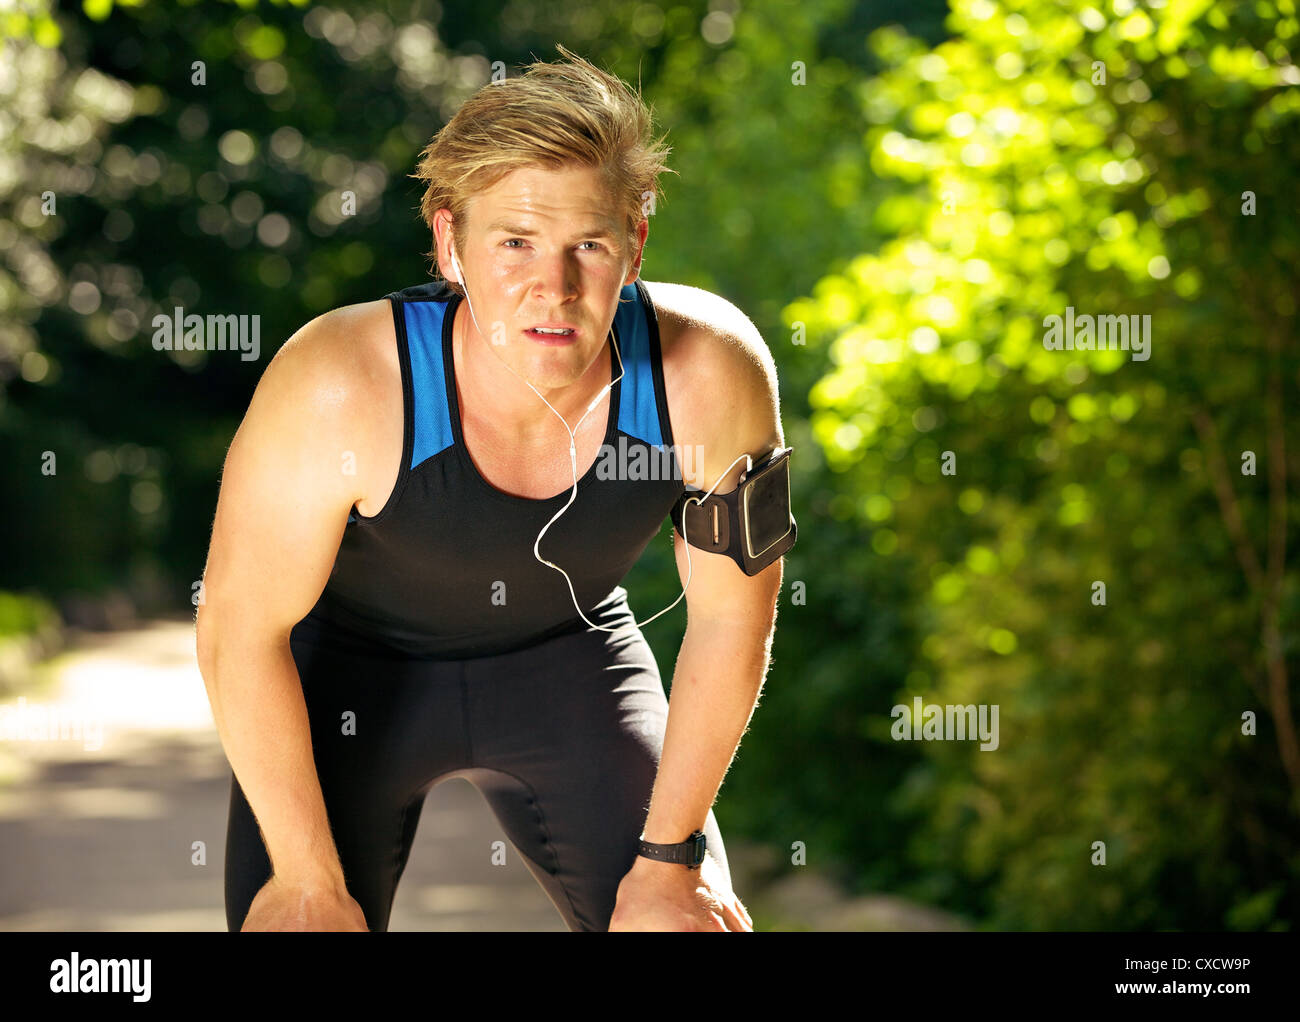 Exhausted athlete taking his break after a tiring workout - Stock Image